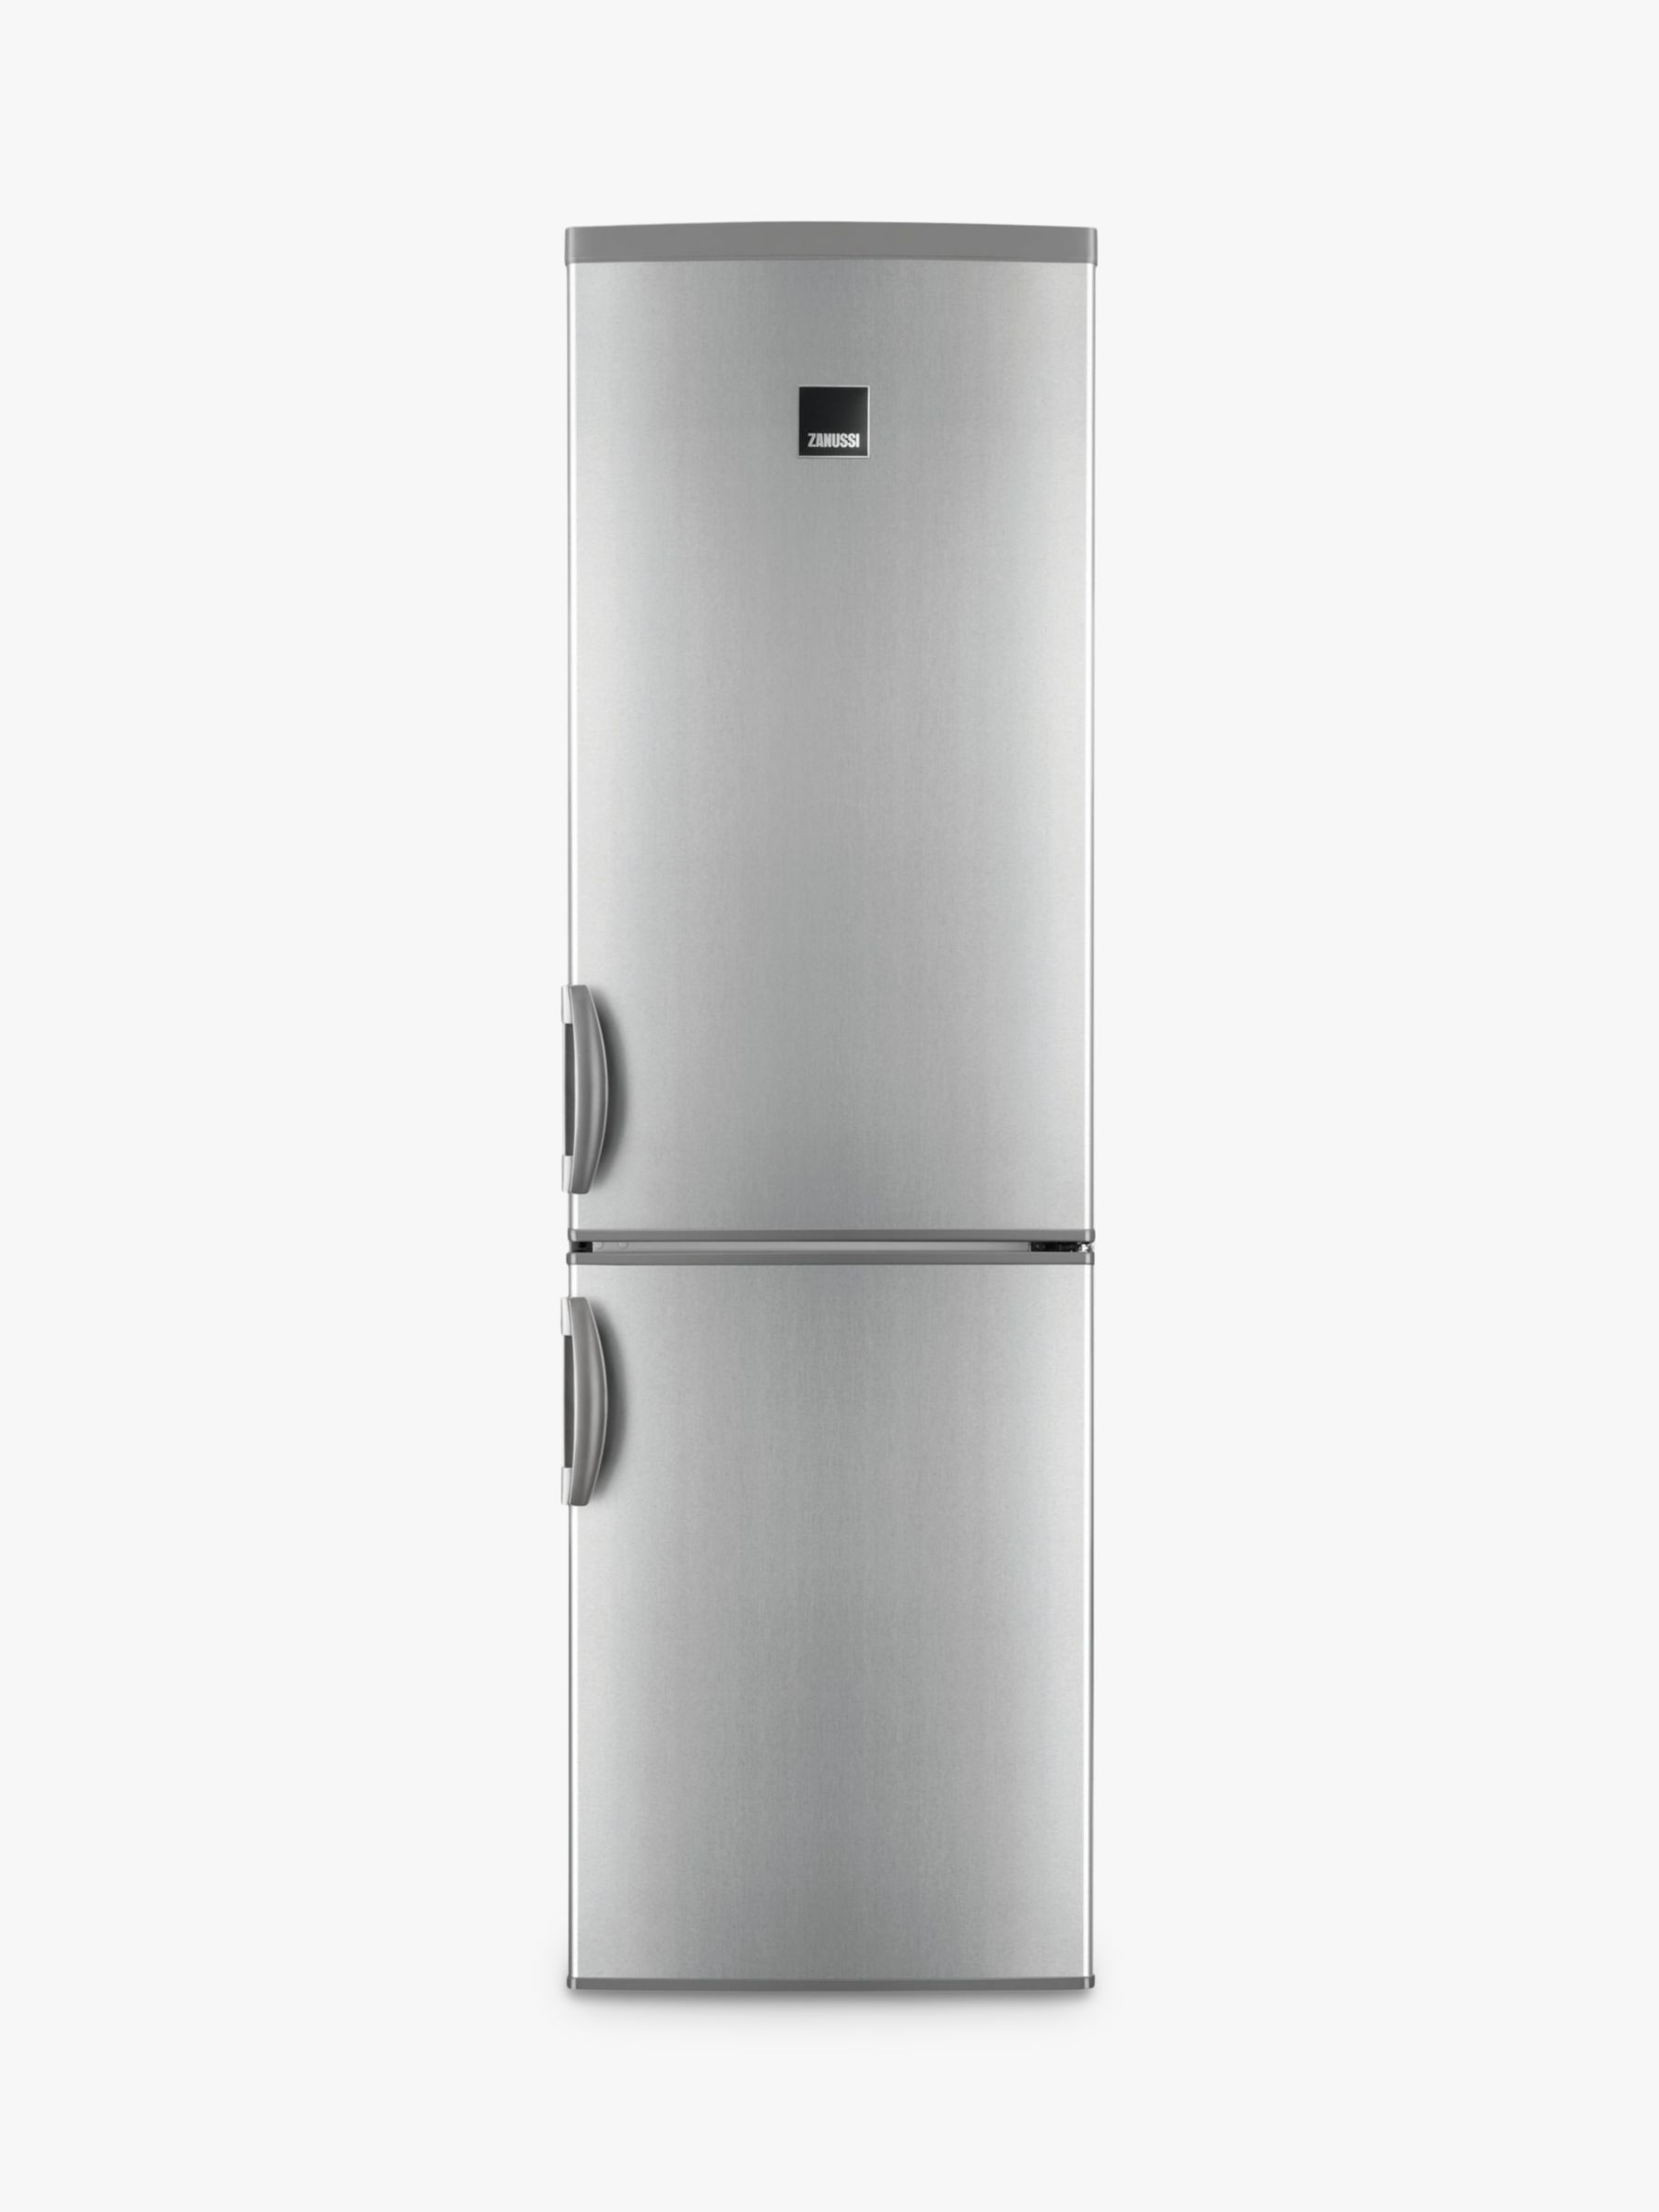 Zanussi Zanussi ZRB38426XV Fridge Freezer, A++ Energy Rating, 60cm Wide, Grey